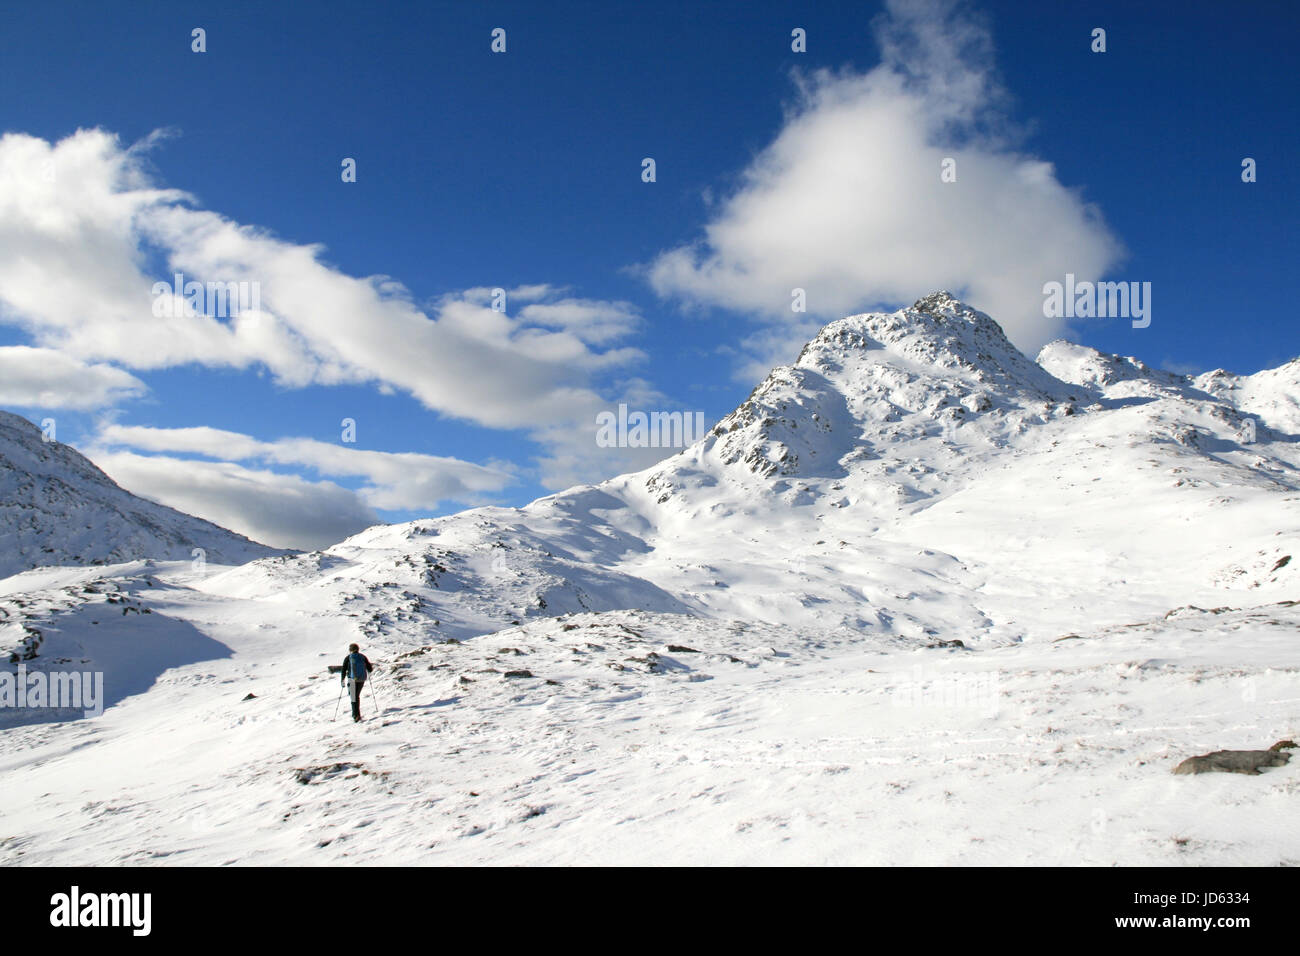 Scottish winter mountaineer walking towards the start of a snow covered Forcan Ridge in Glen Shiel. - Stock Image